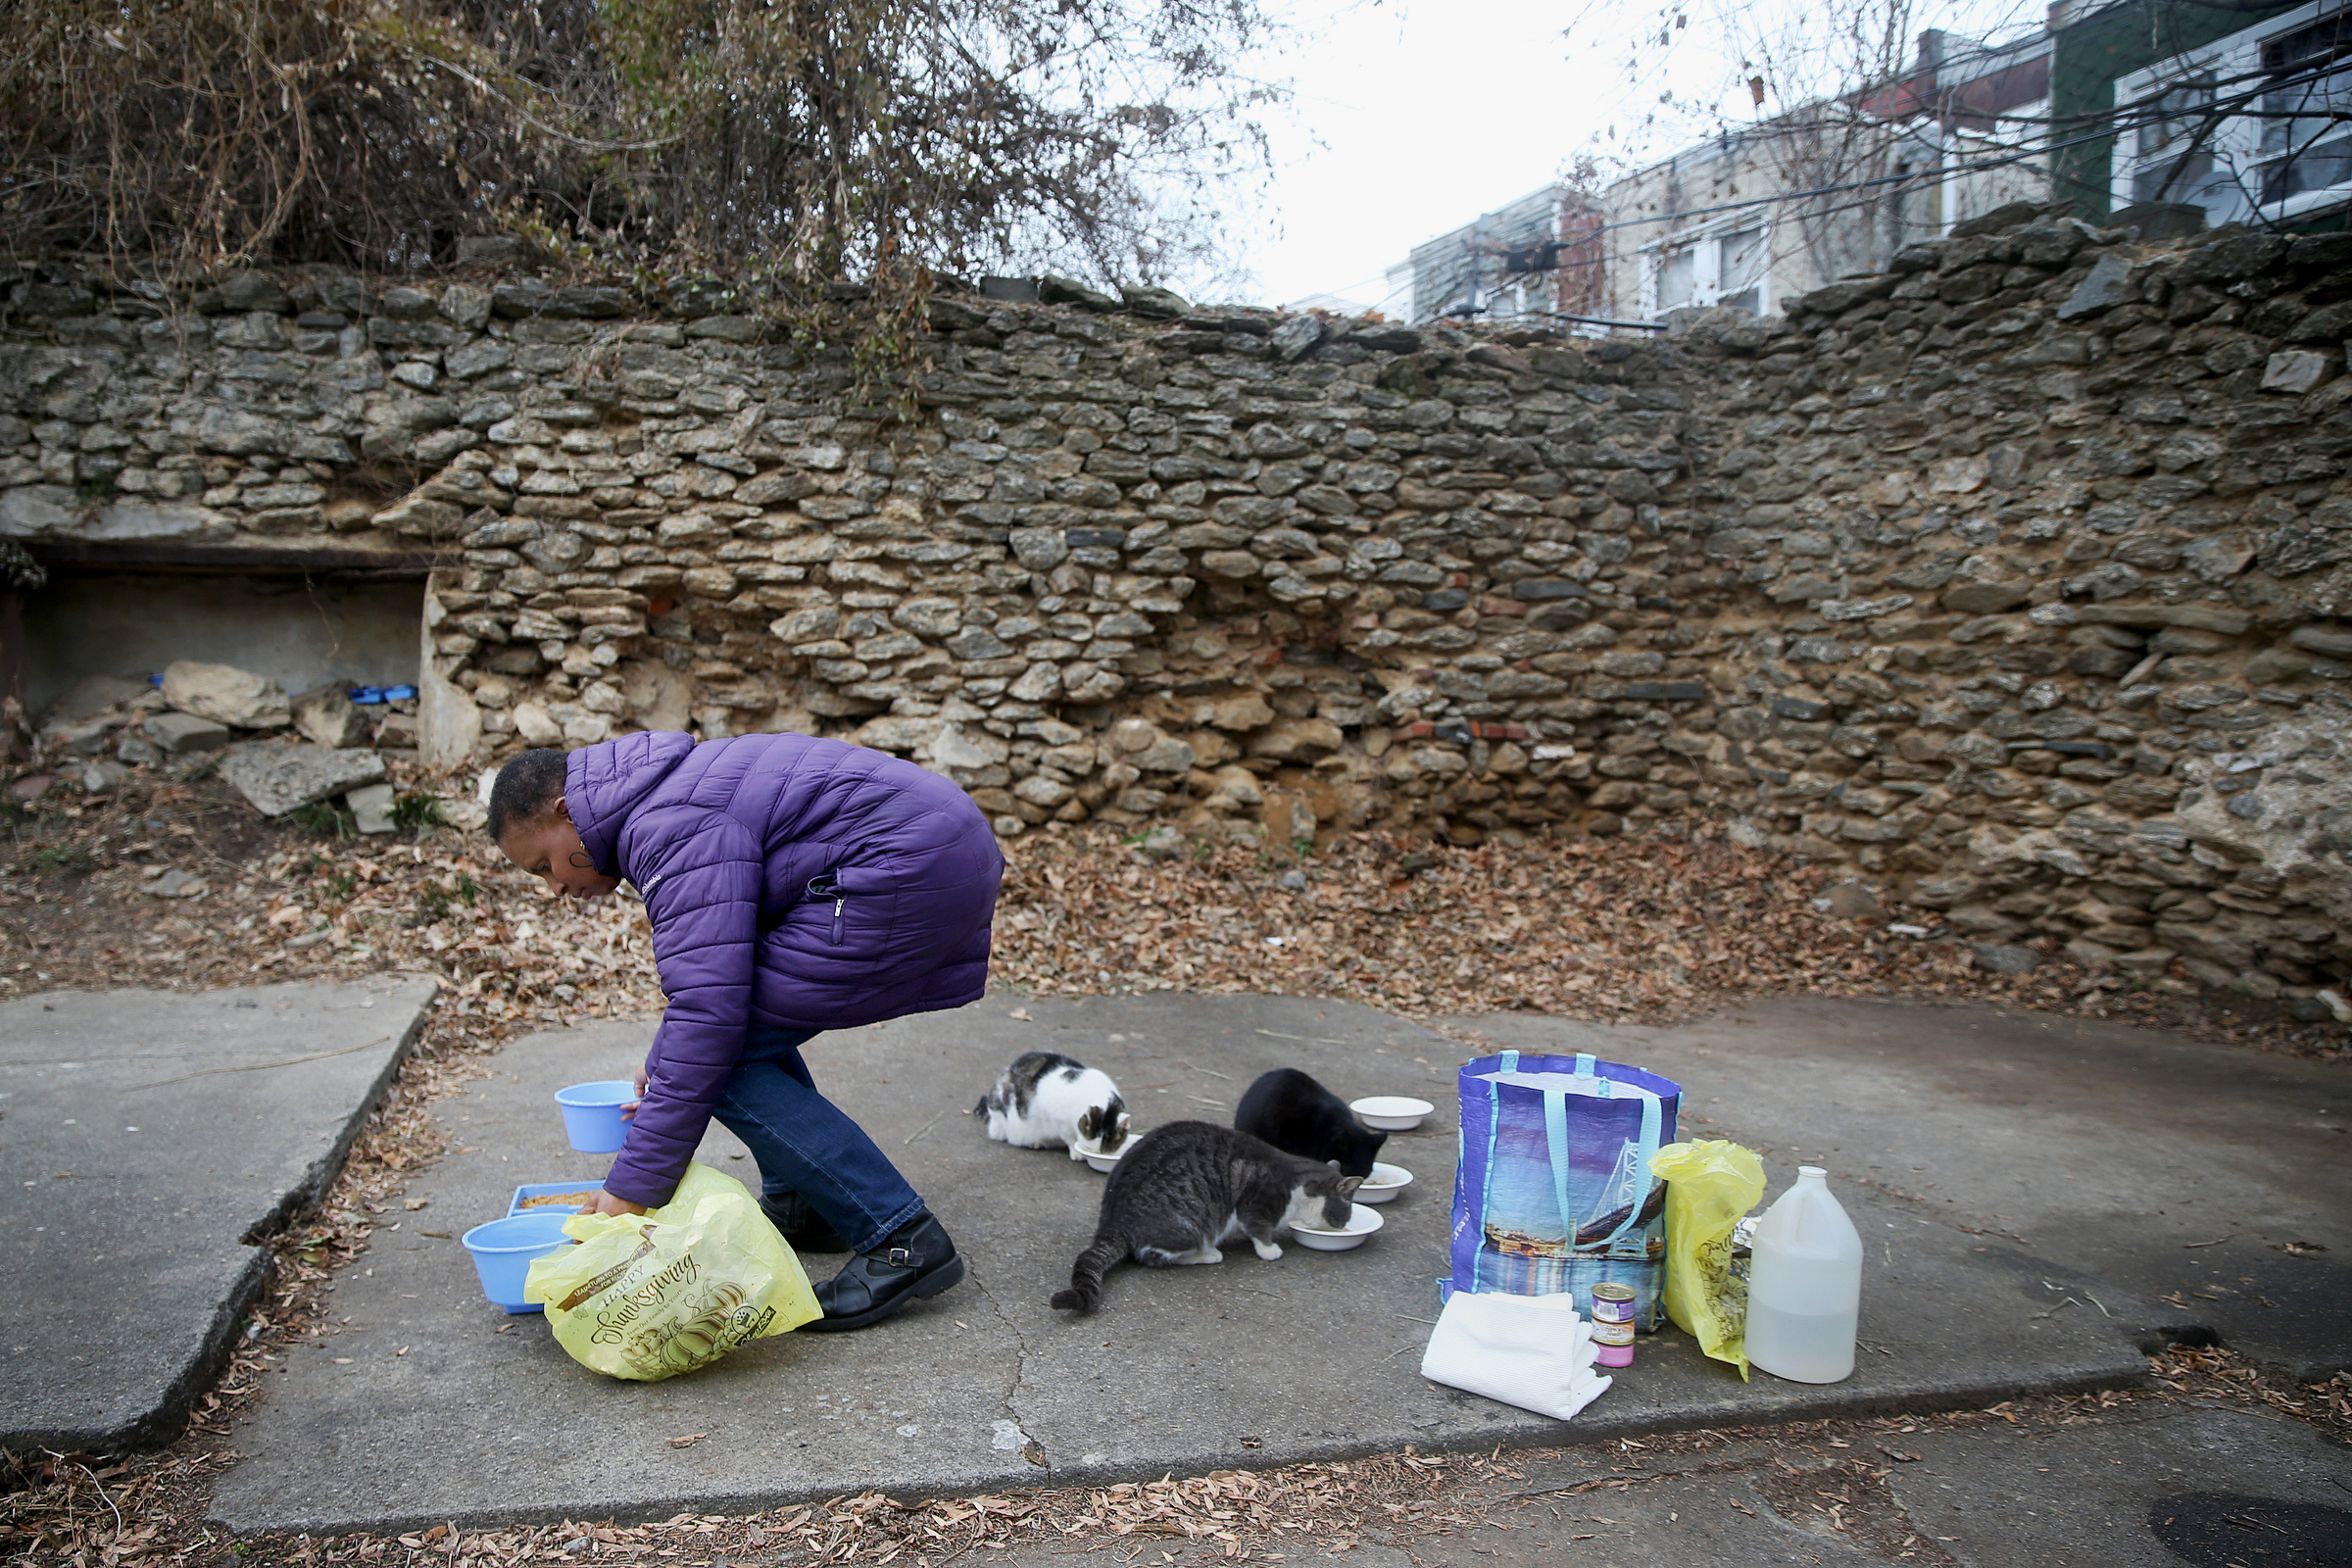 Pat Frederick pets stray cats in her Germantown neighborhood on Friday, Dec. 22, 2017. Frederick has been taking care of dozens of stray cats — including feeding them daily, getting them spayed or neutered and promoting adoption — for about eight years, despite her worsening personal health issues.